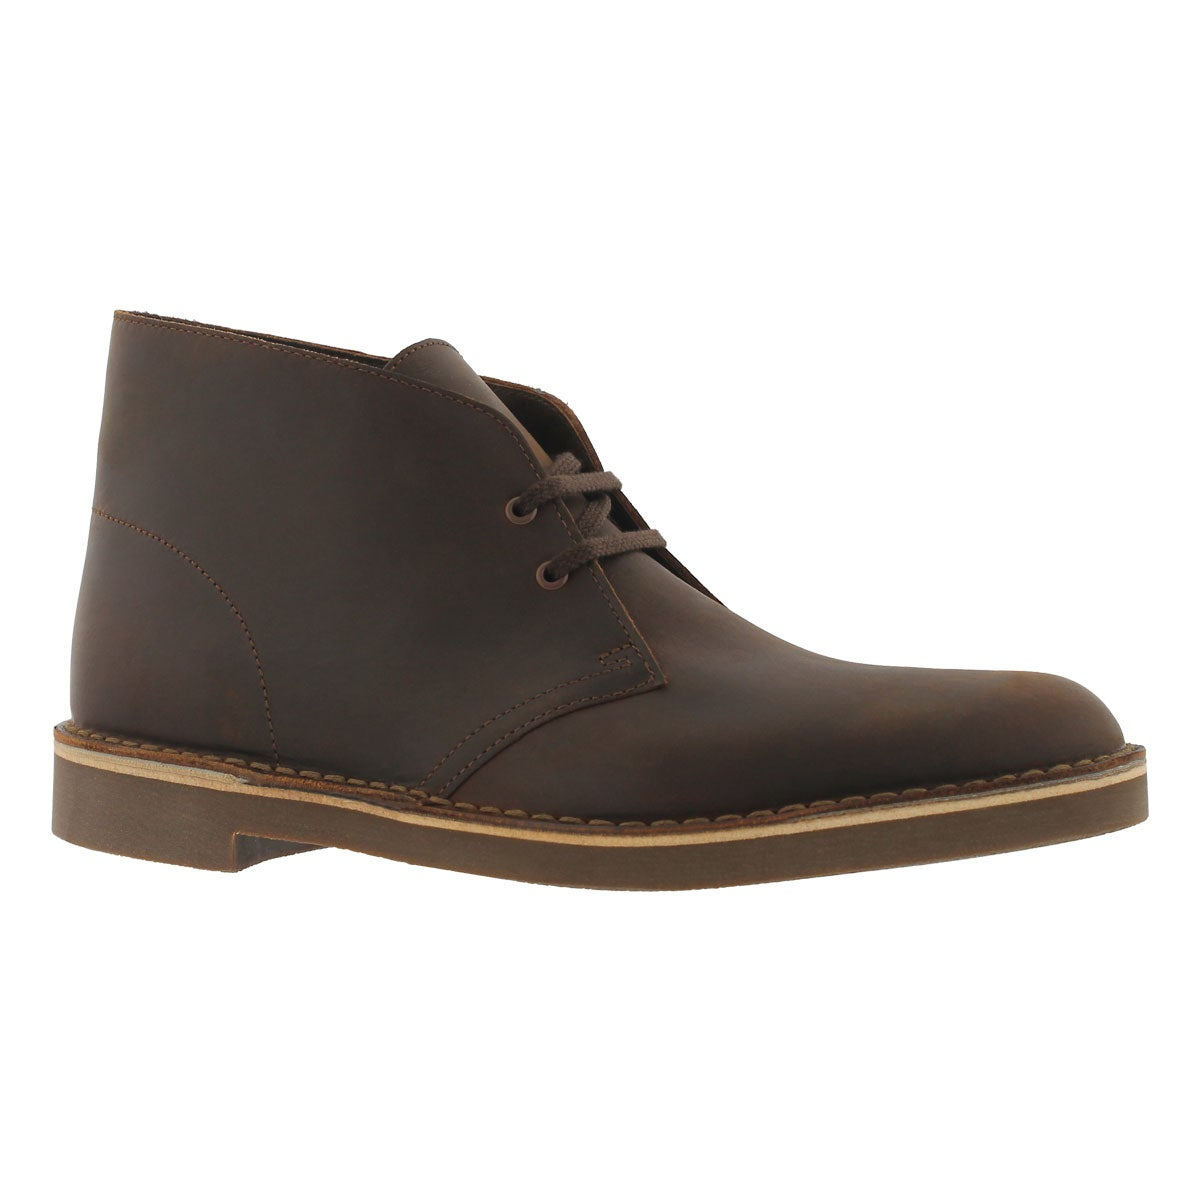 Men's BUSHACRE 2 dark brown desert boots